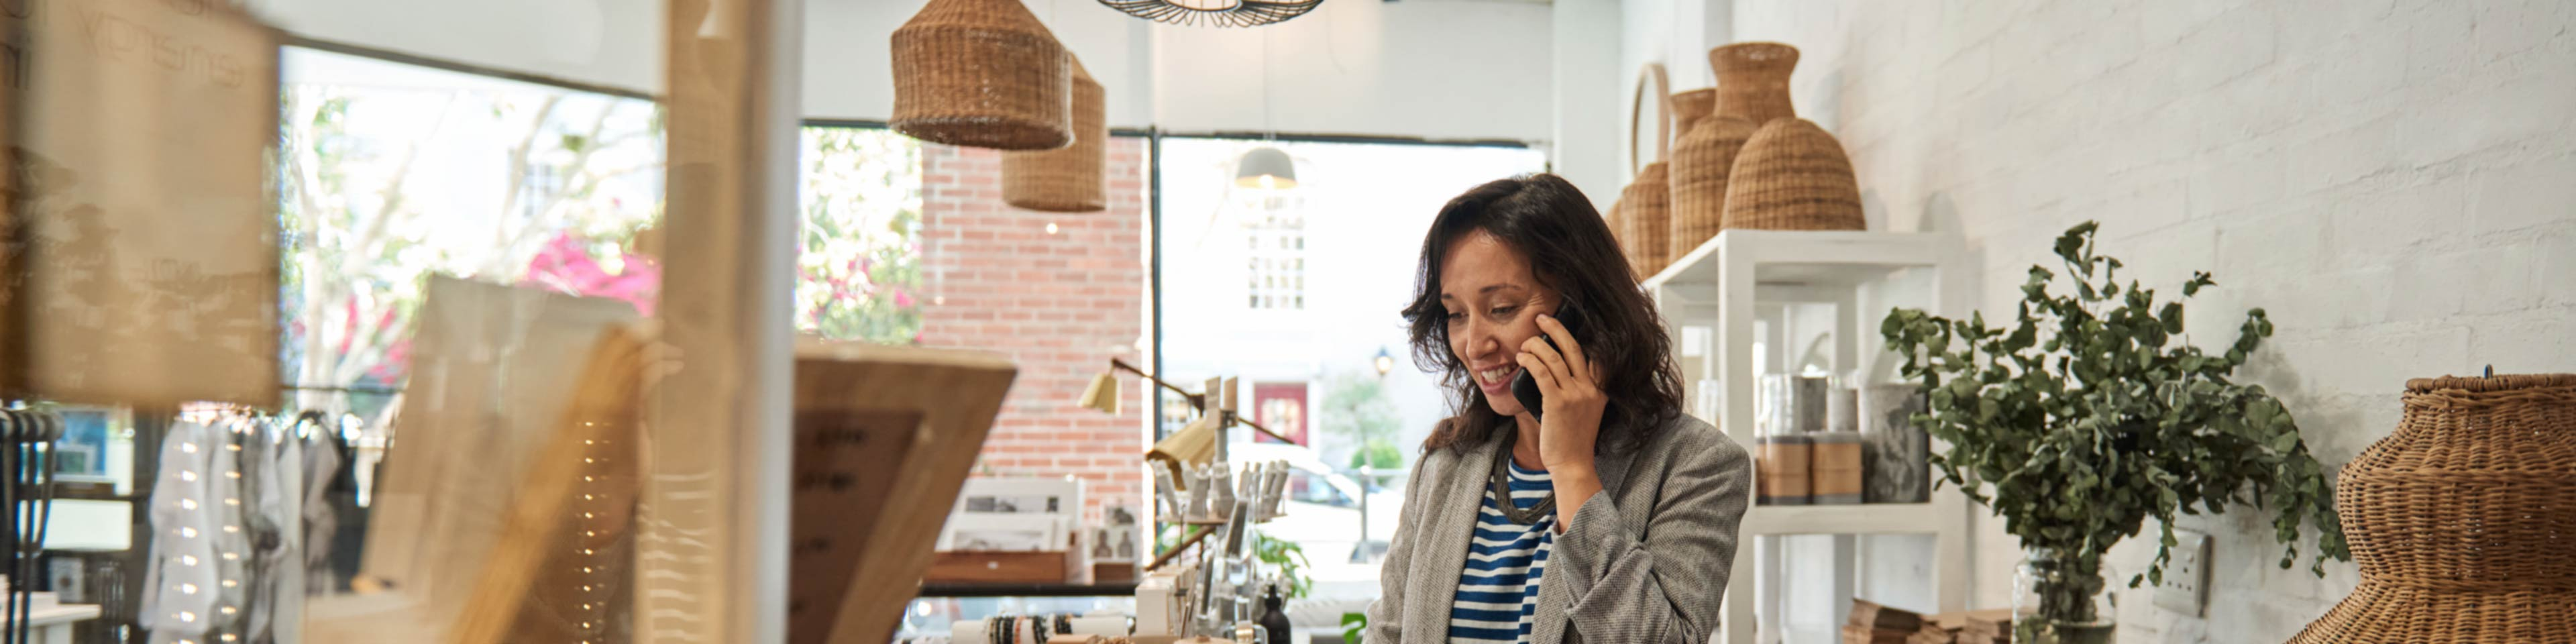 Brick and mortar vs online stores Compliance considerations for doing business